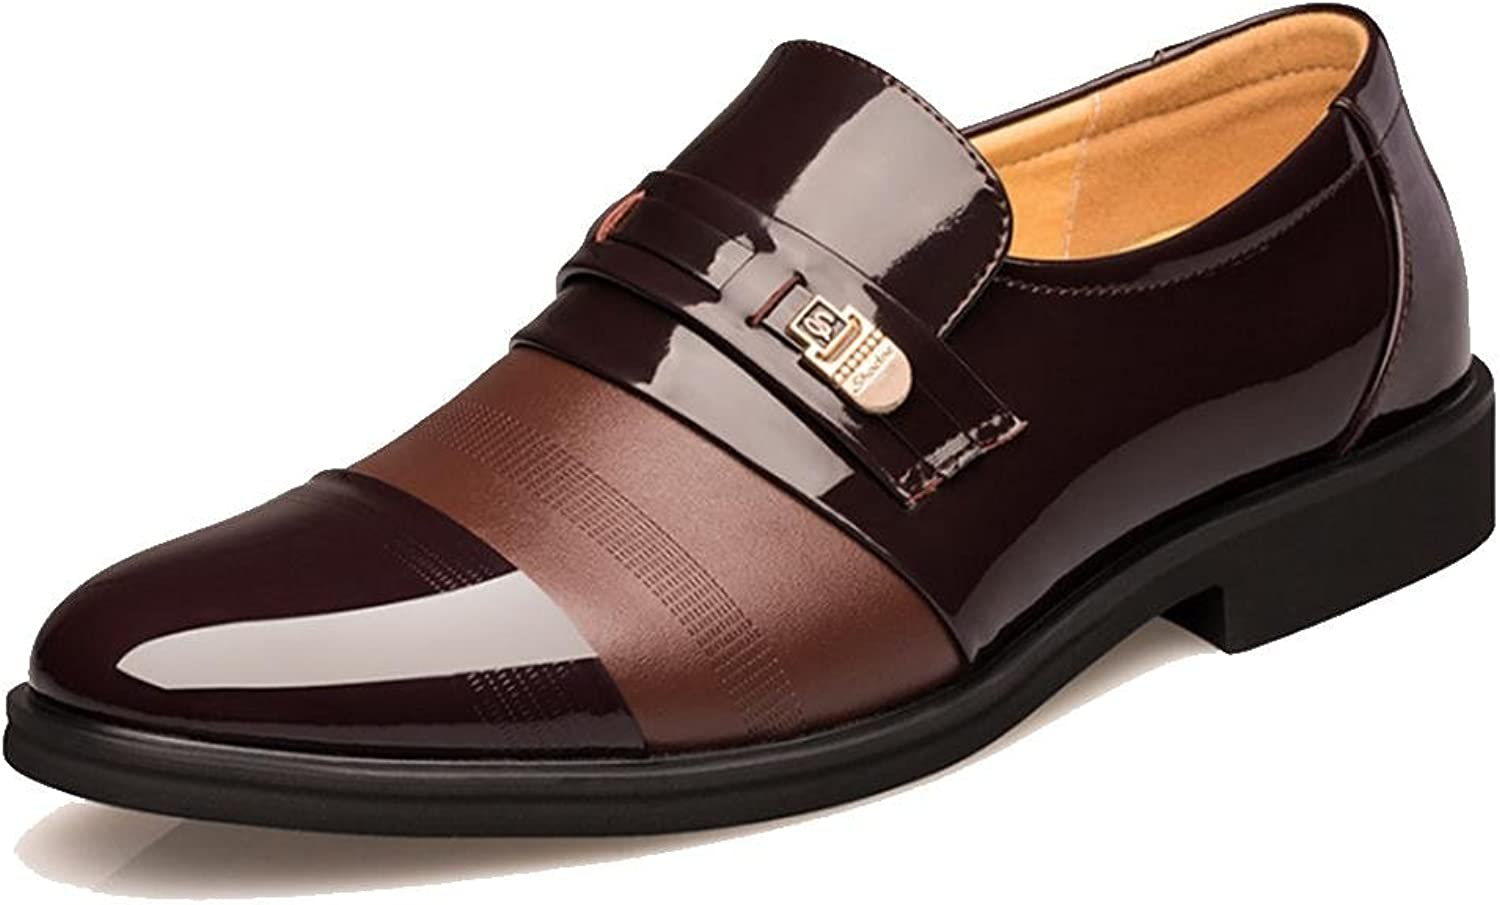 NSHX Men's shoes, business, casual shoes, round shoes